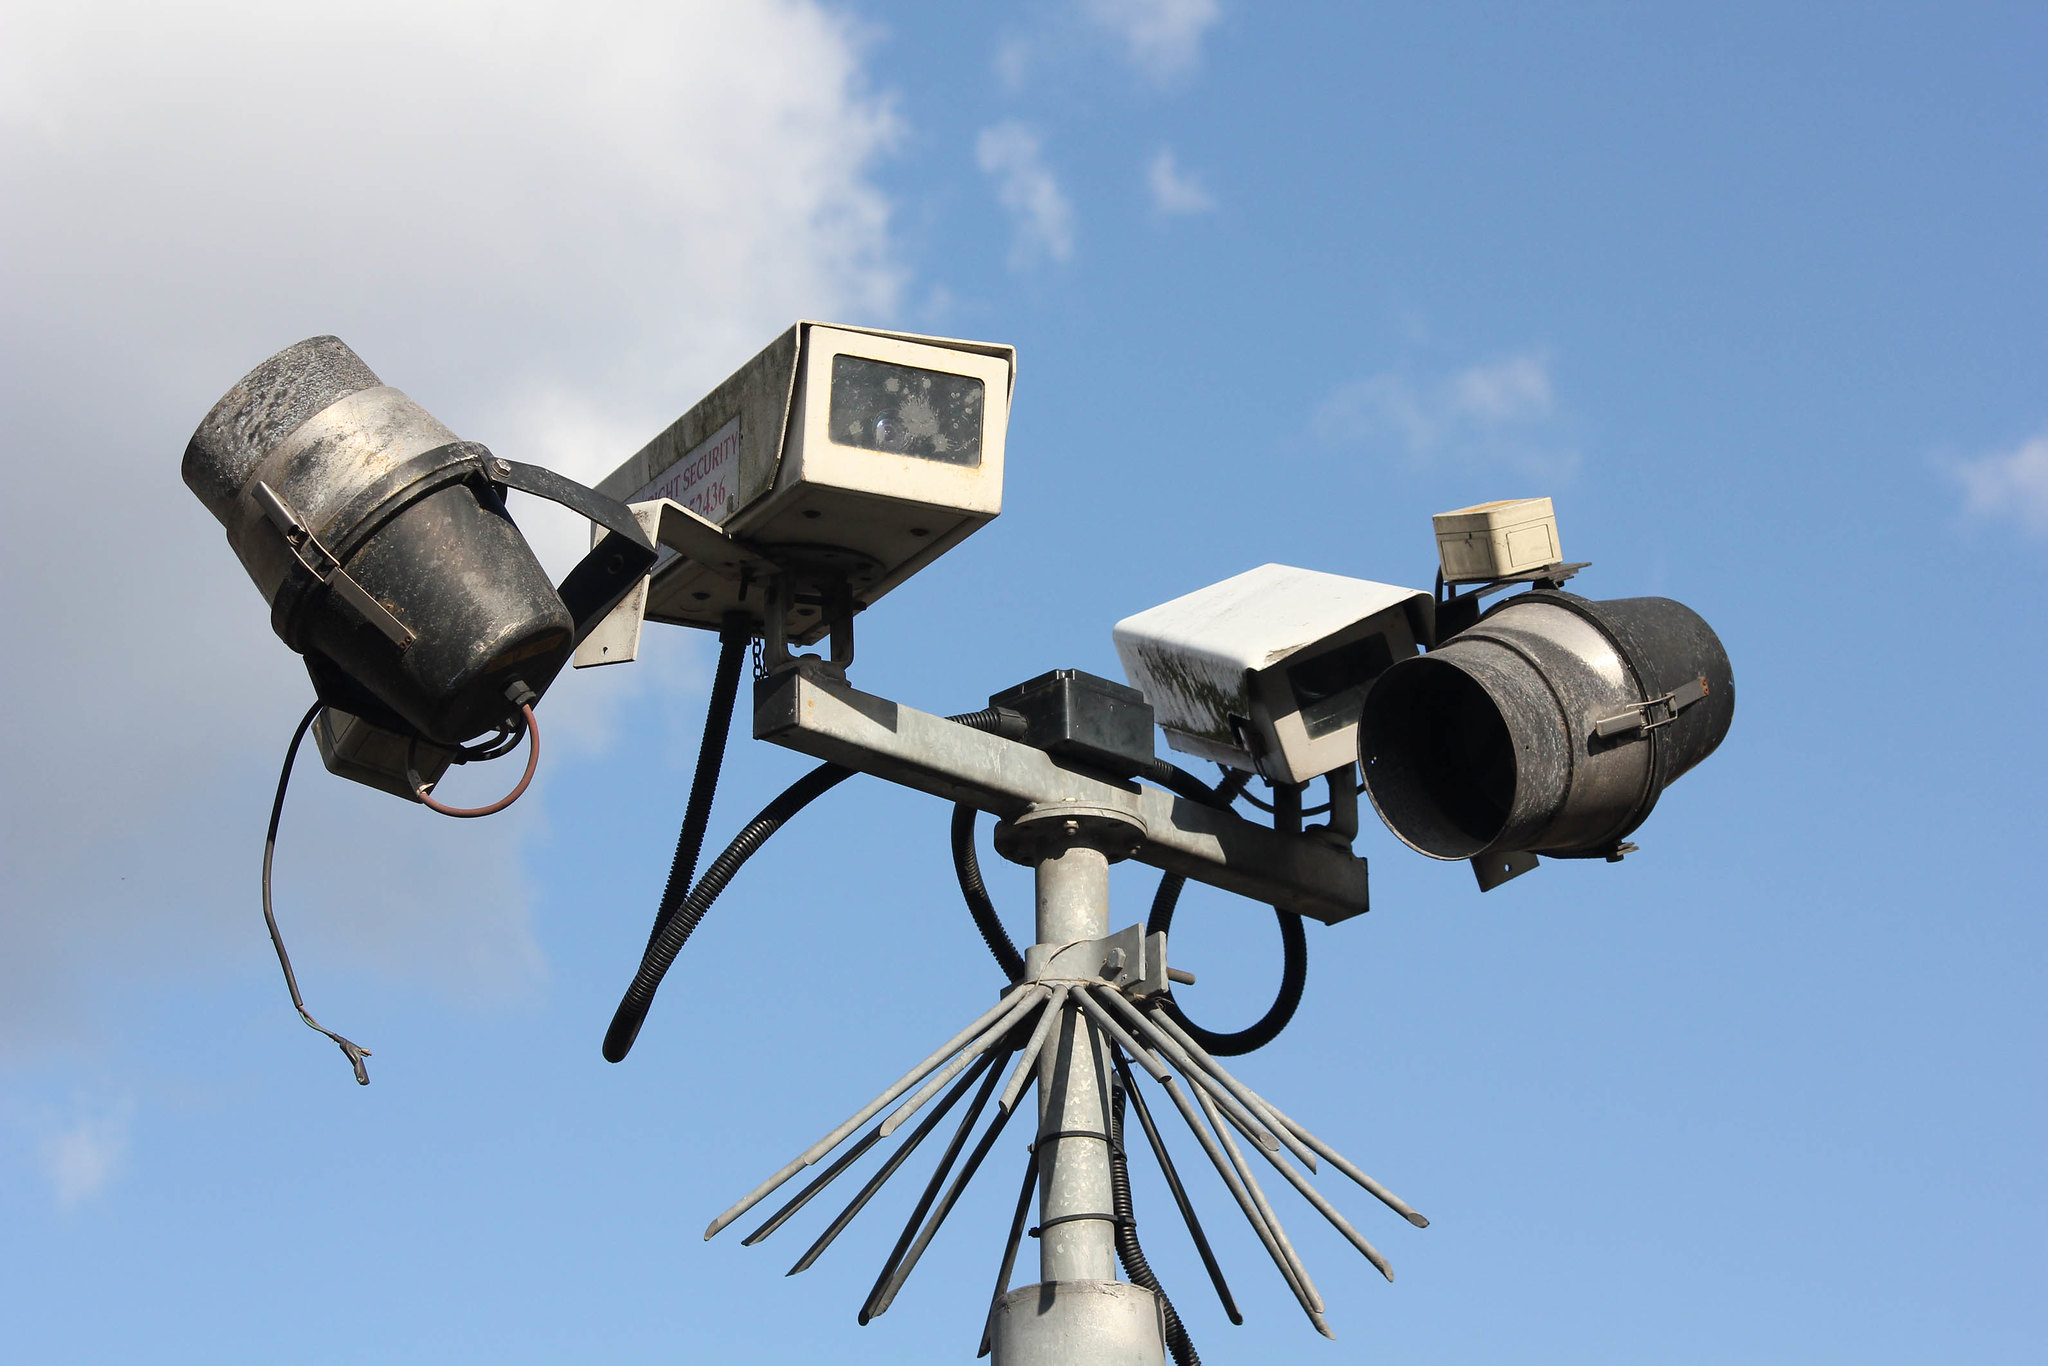 Photo of CCTV camera by Rafael Parr